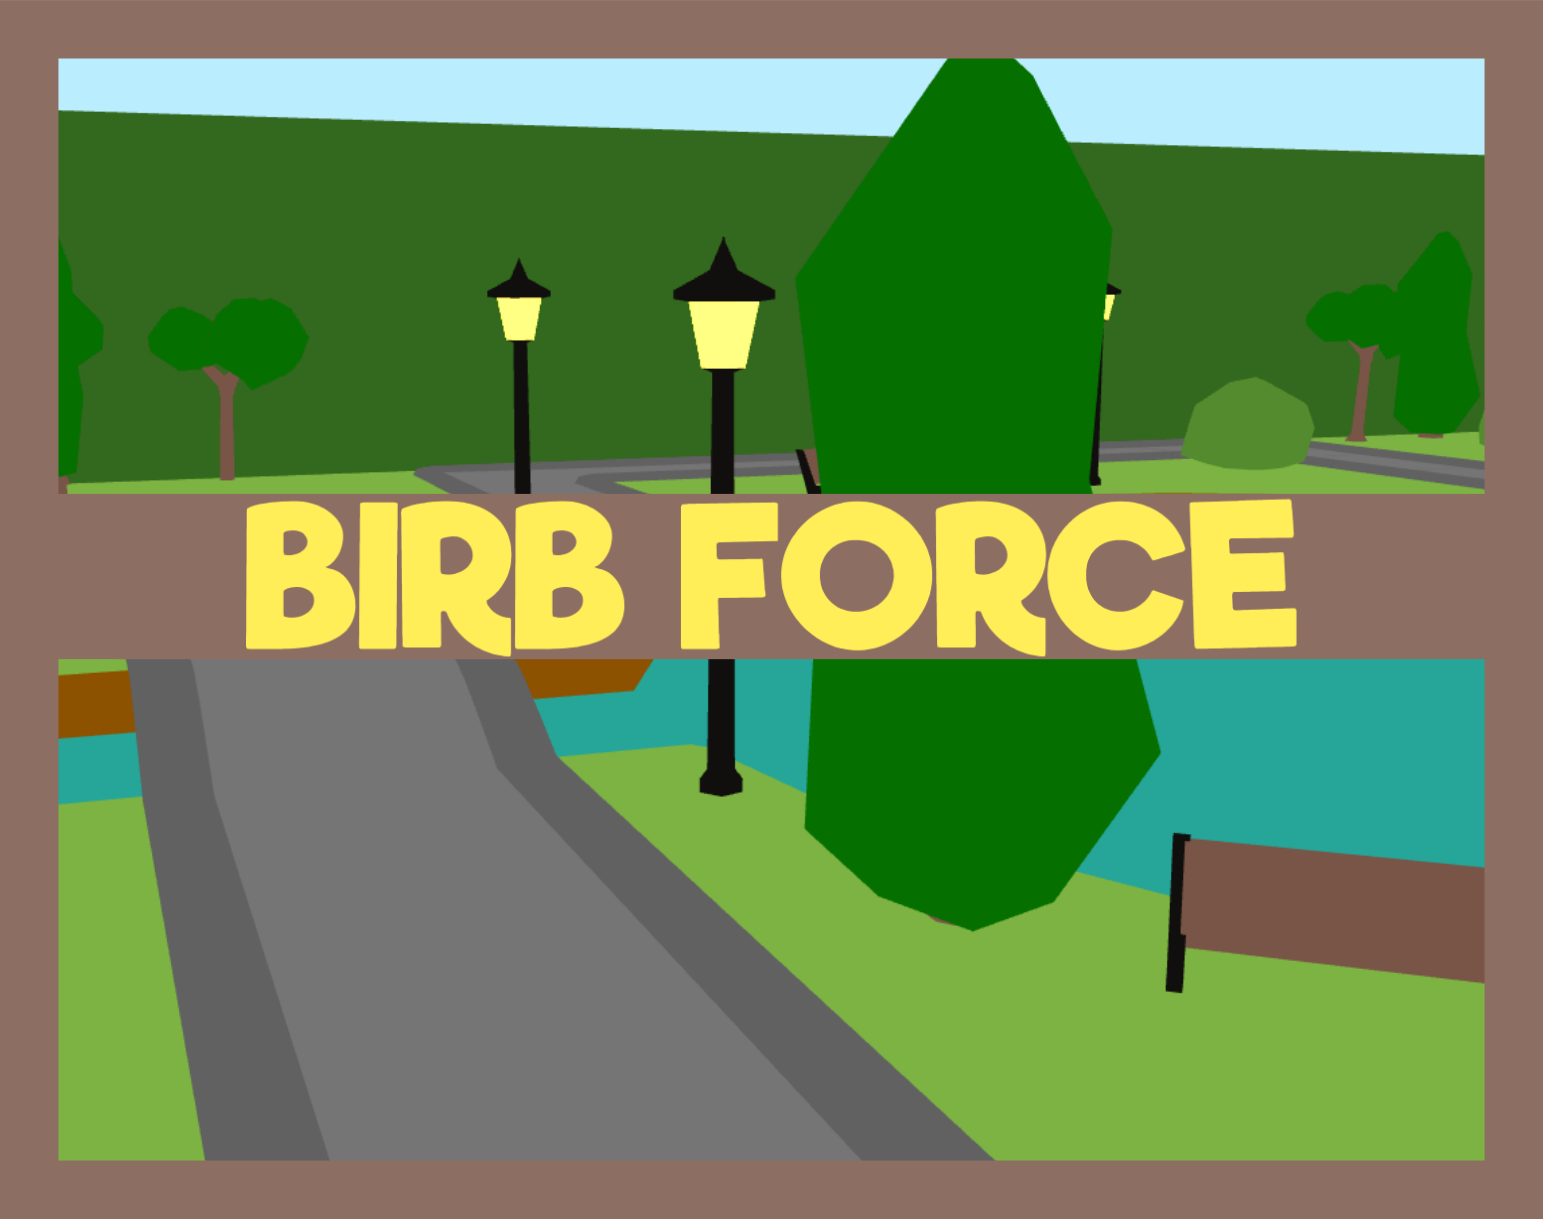 Birbforce